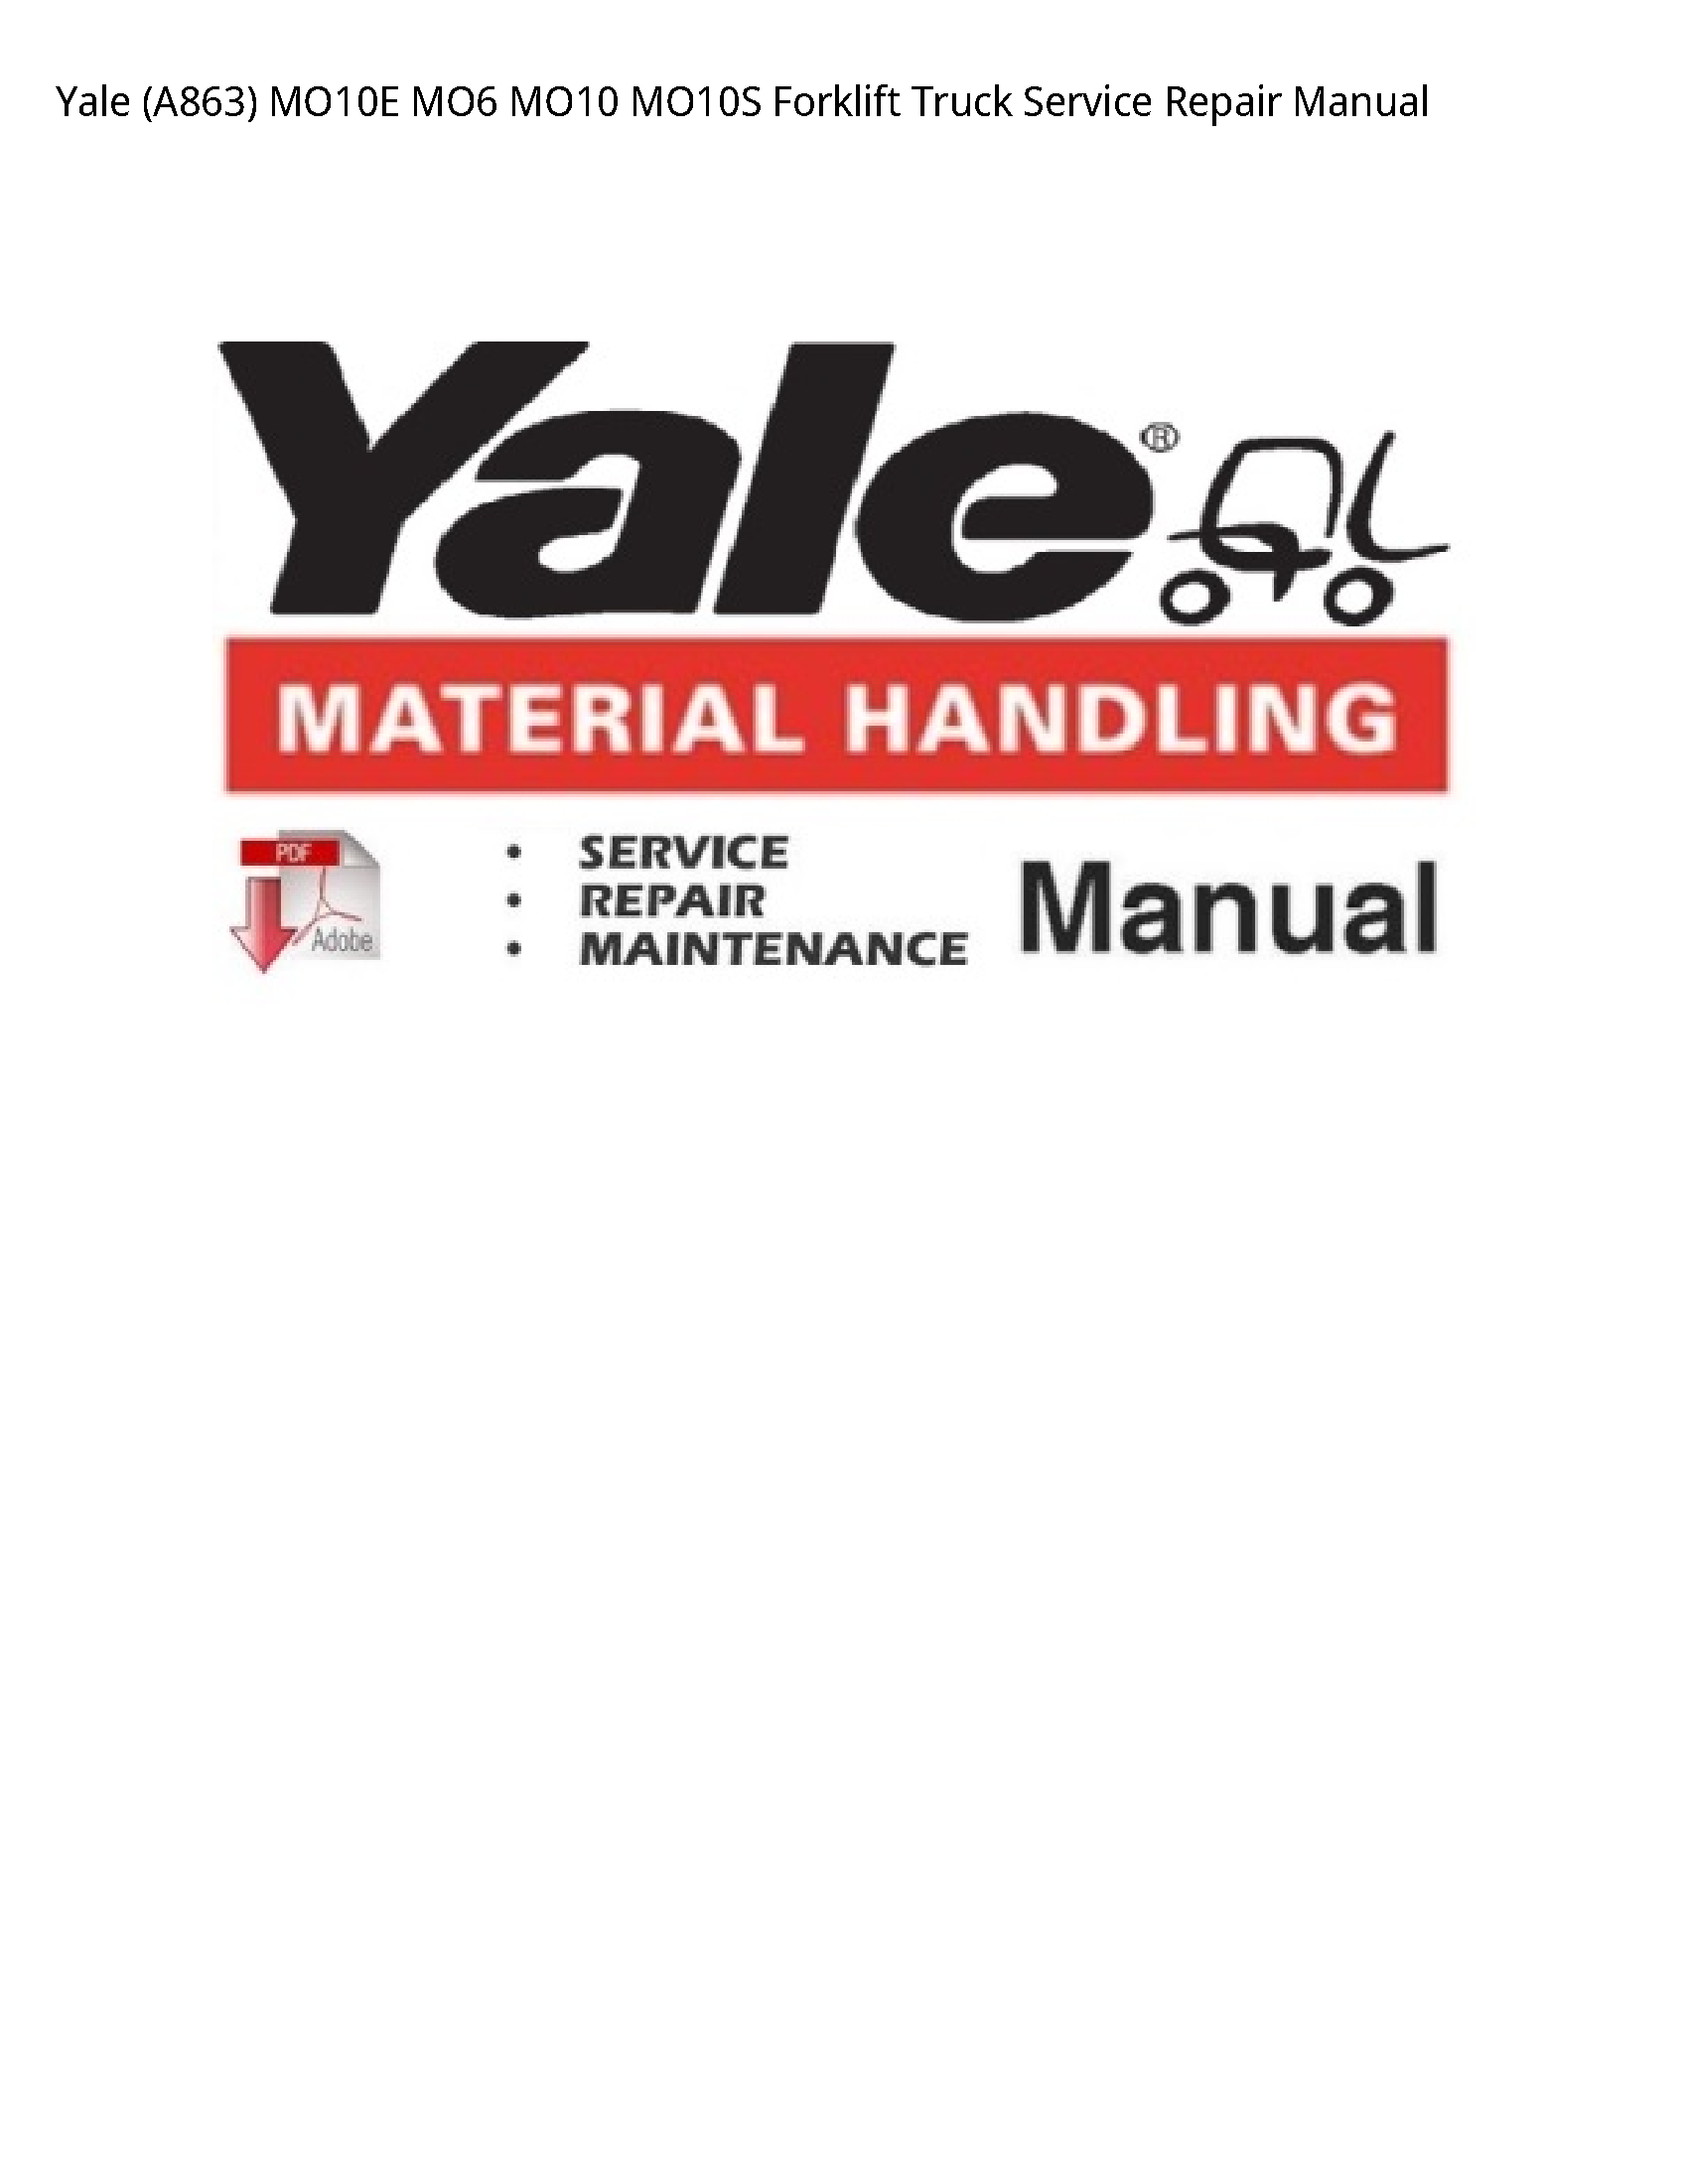 Yale (A863) Forklift Truck manual